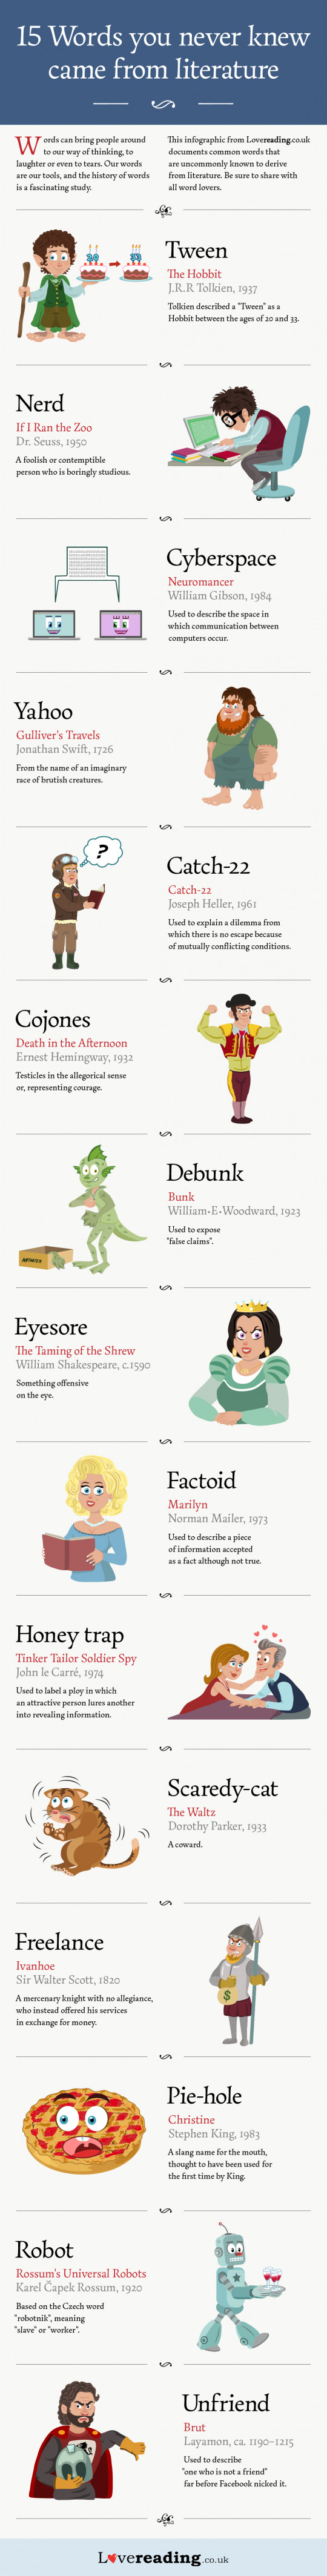 15 Words You Never Knew Came from Literature